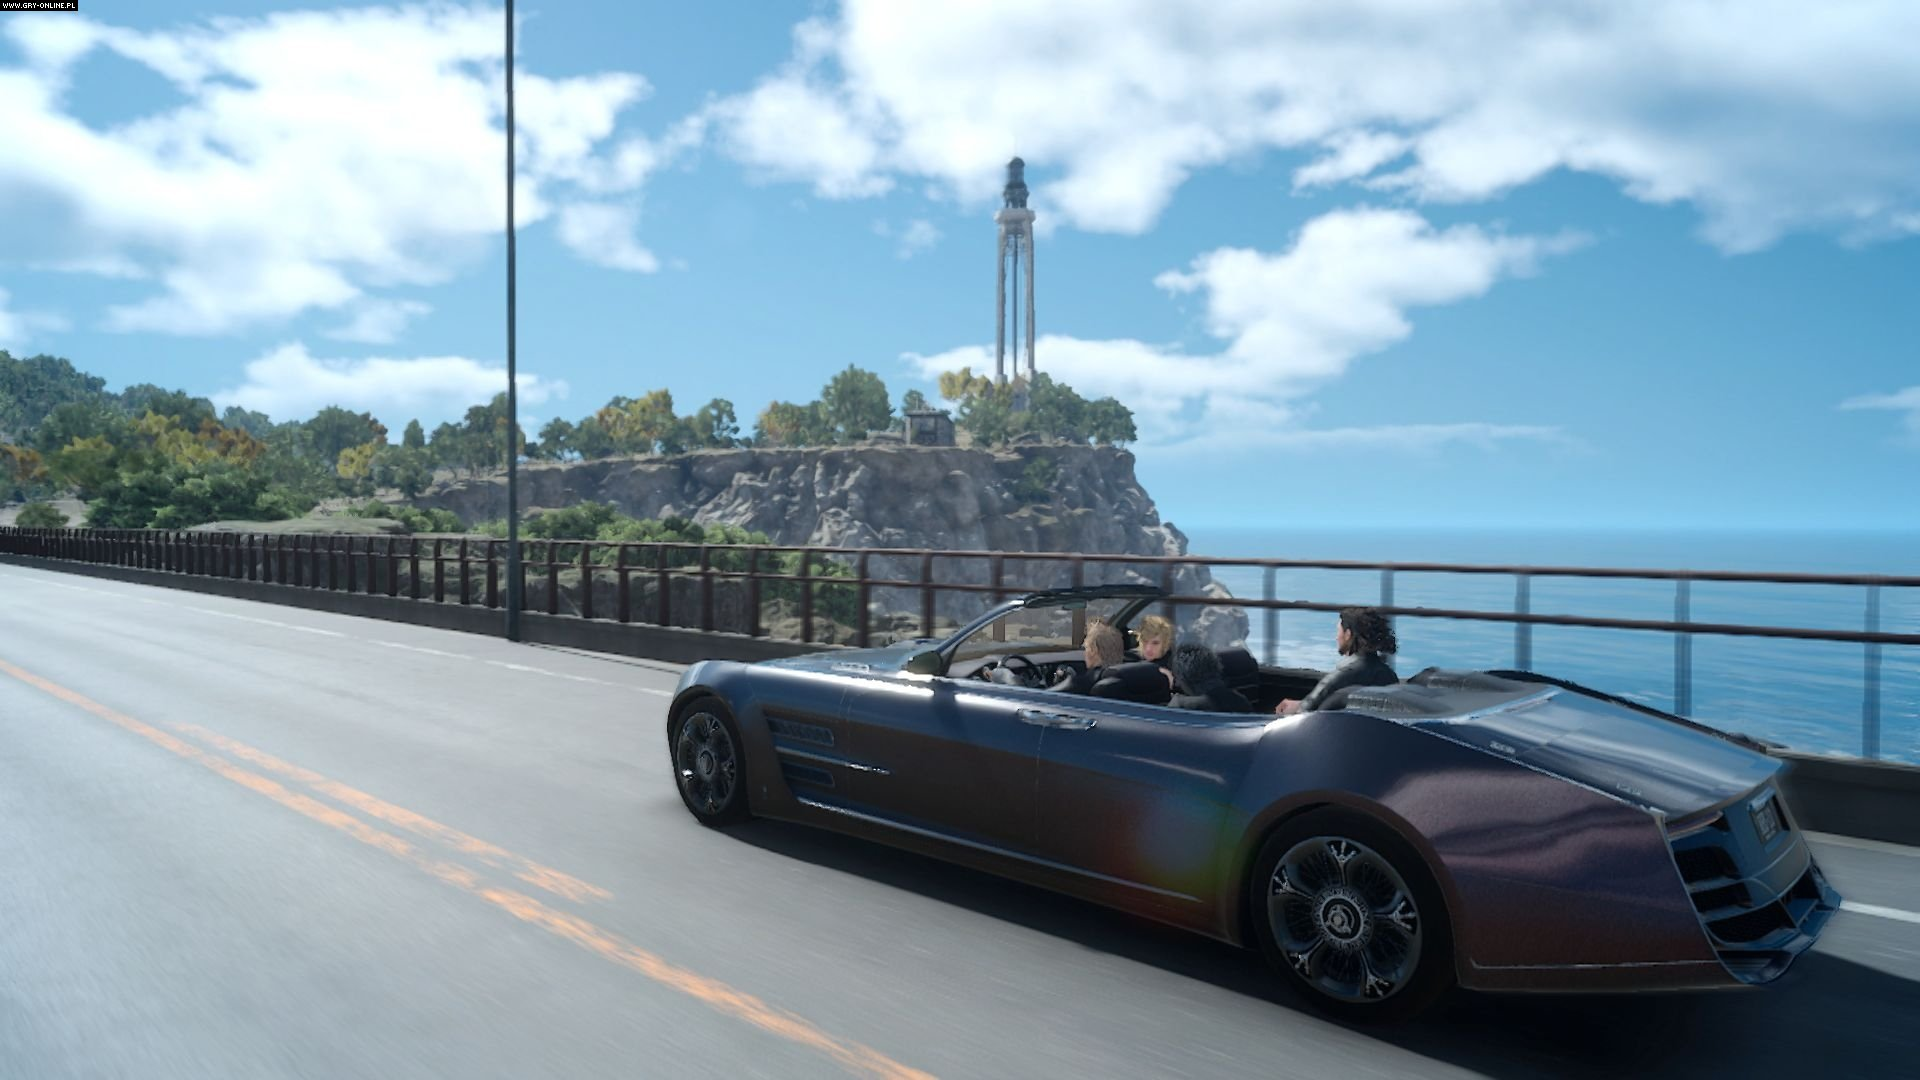 Final Fantasy XV PS4, XONE Games Image 28/295, Square-Enix, Square-Enix / Eidos